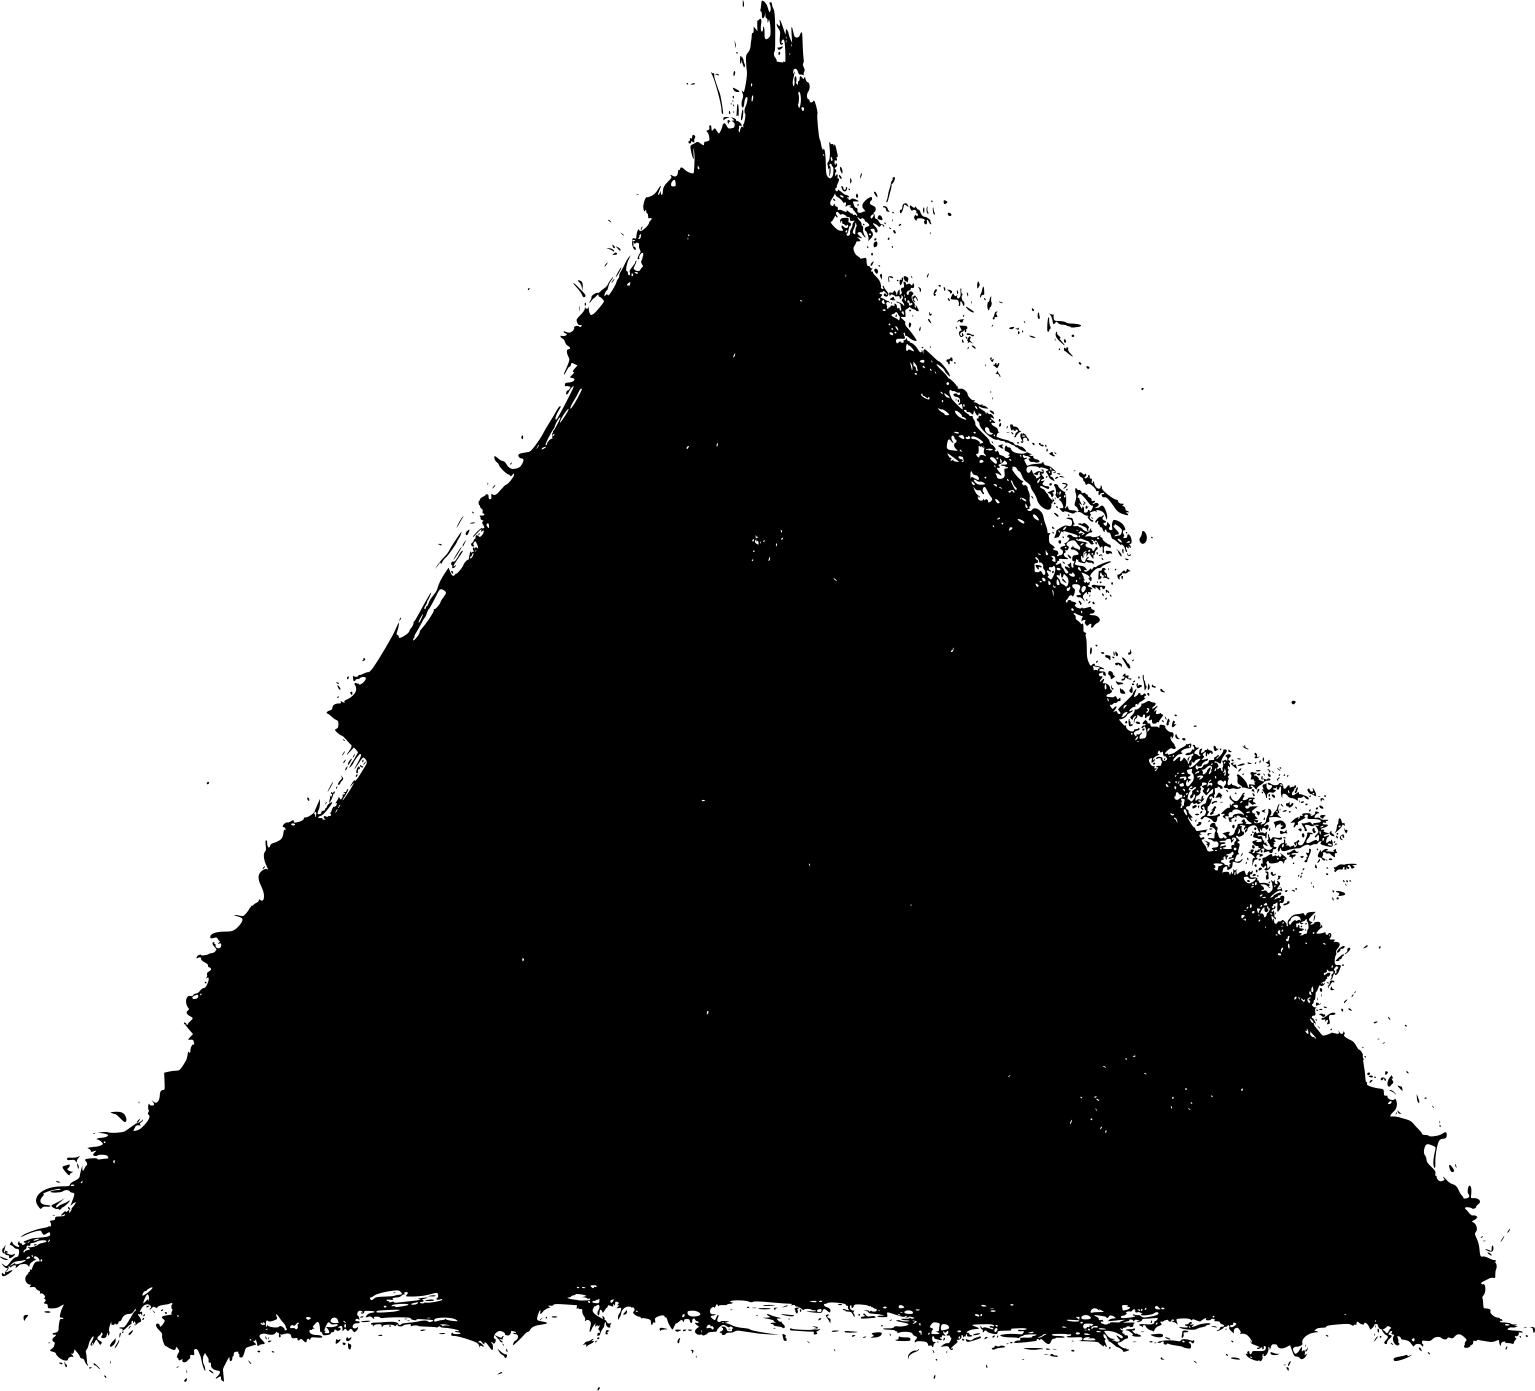 4 grunge triangle  png transparent